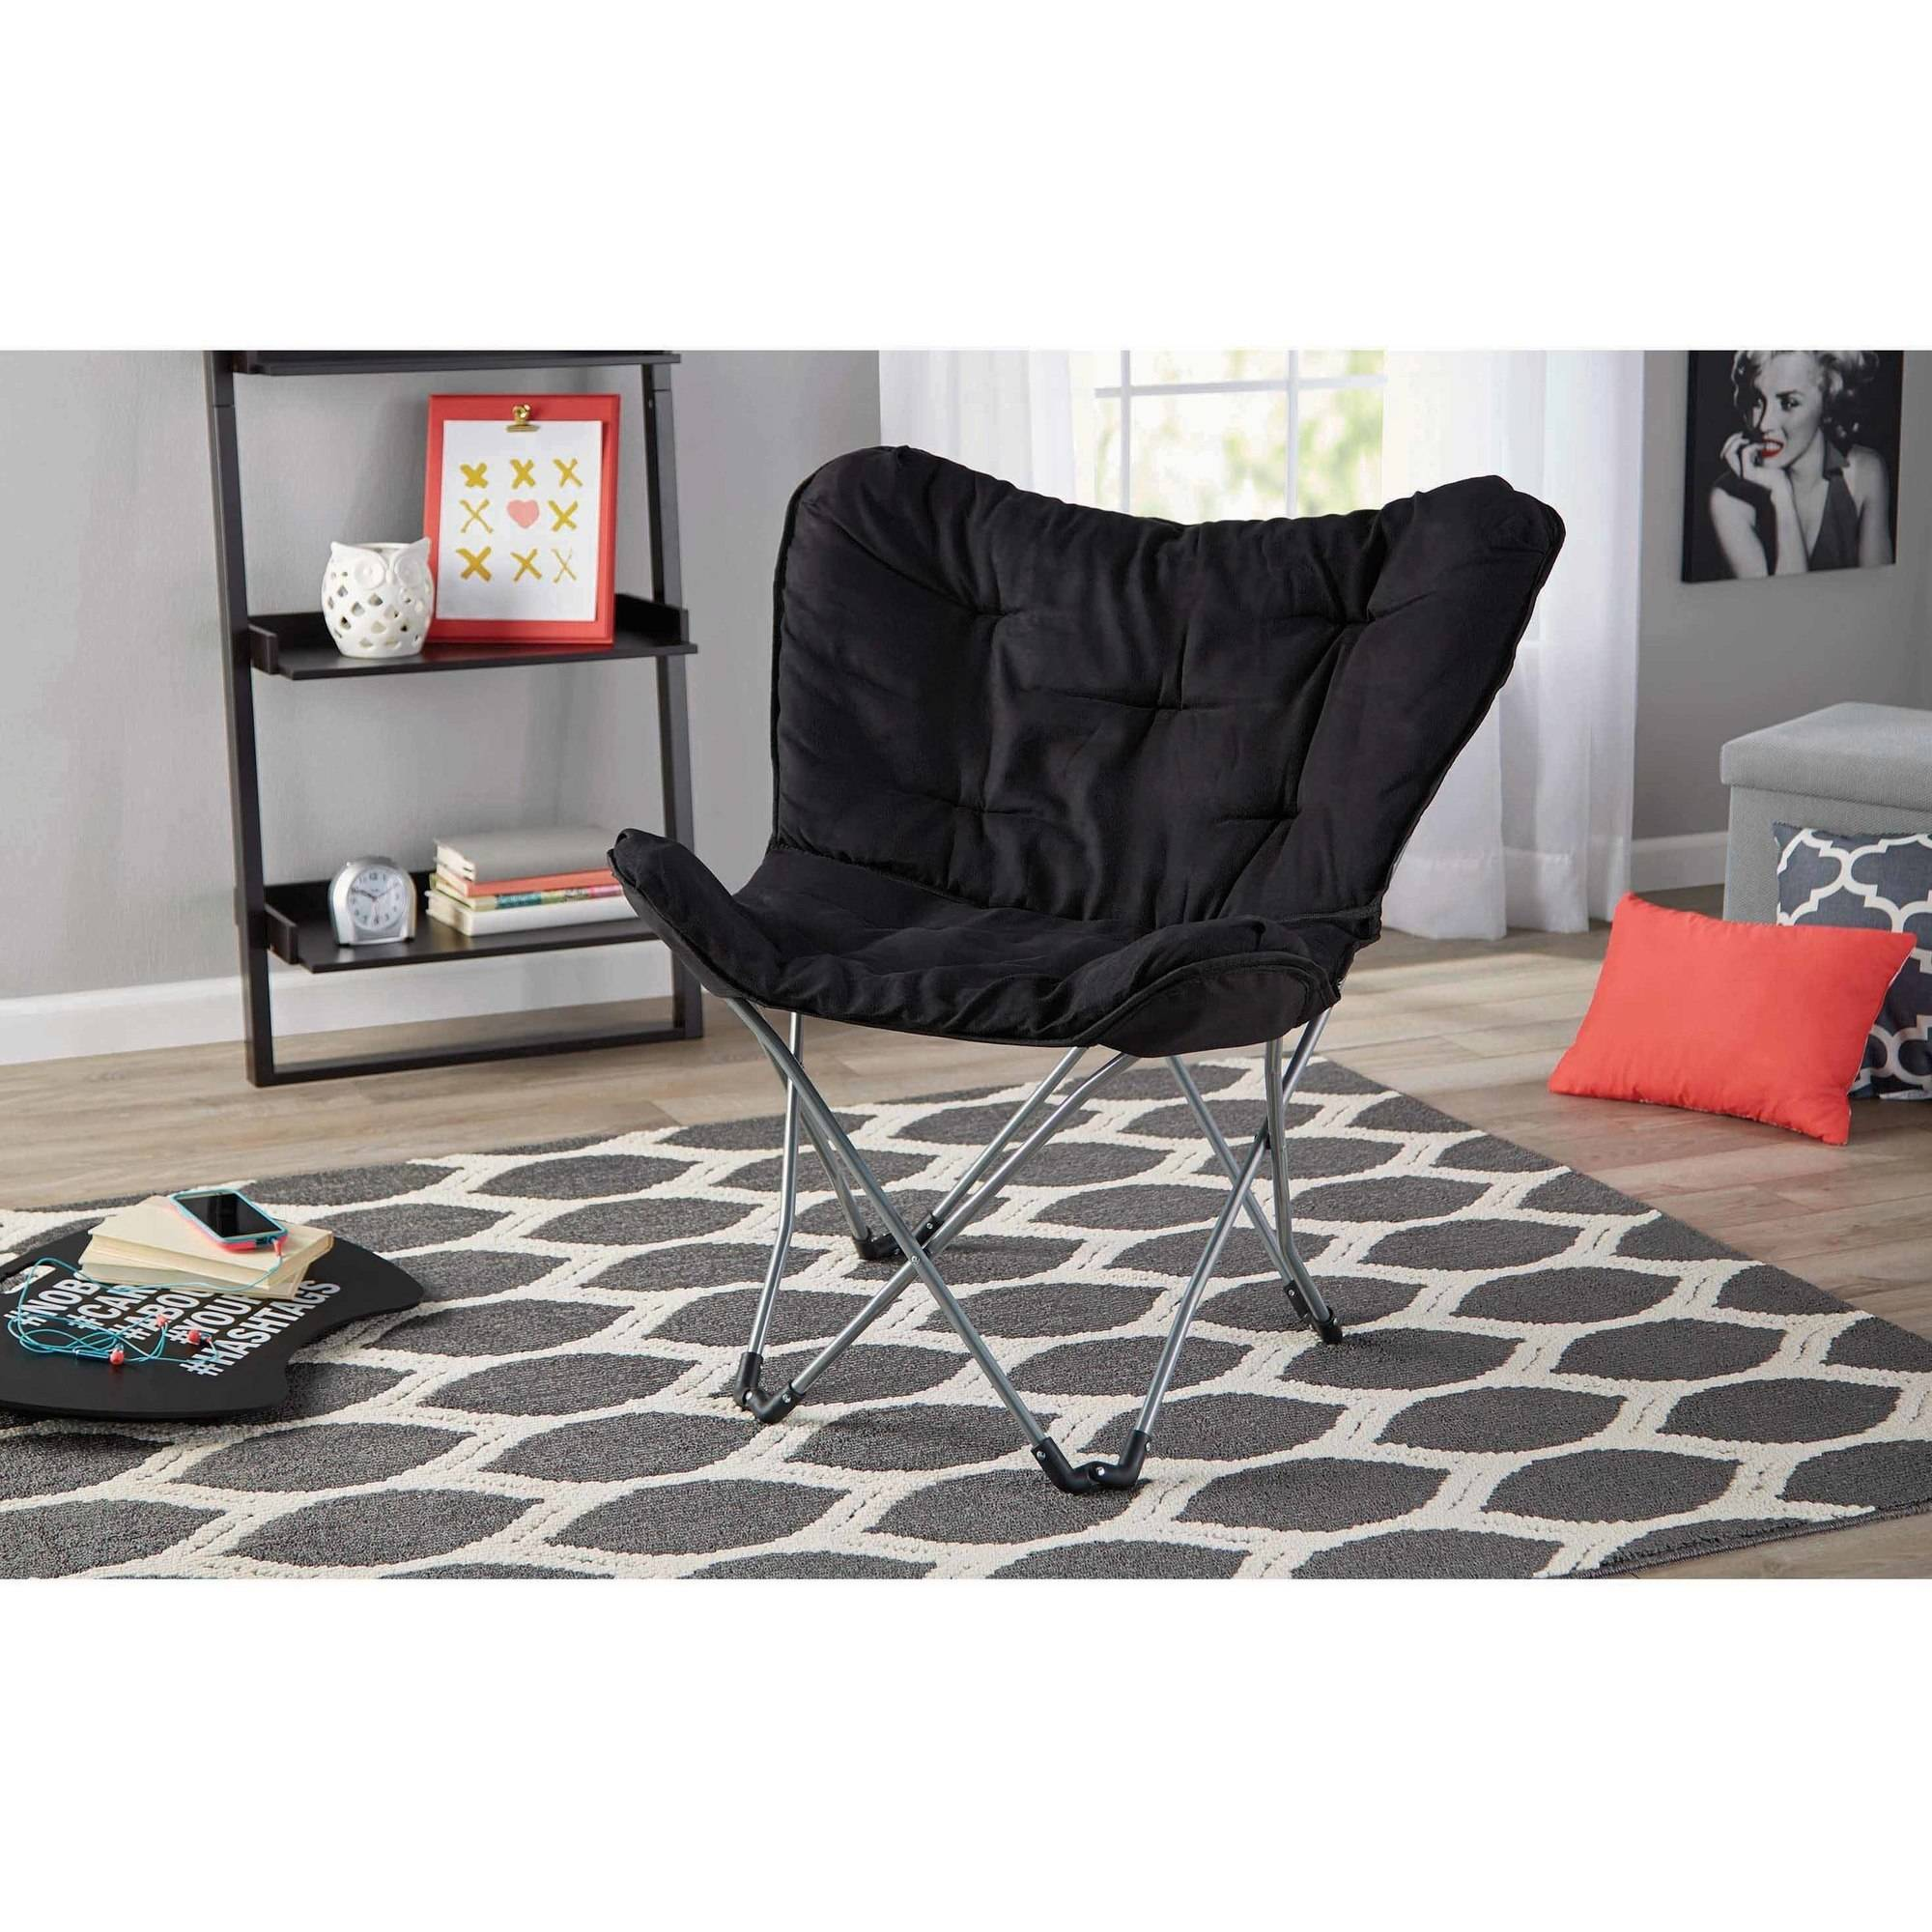 Butterfly chair black - Butterfly Chair Black 19